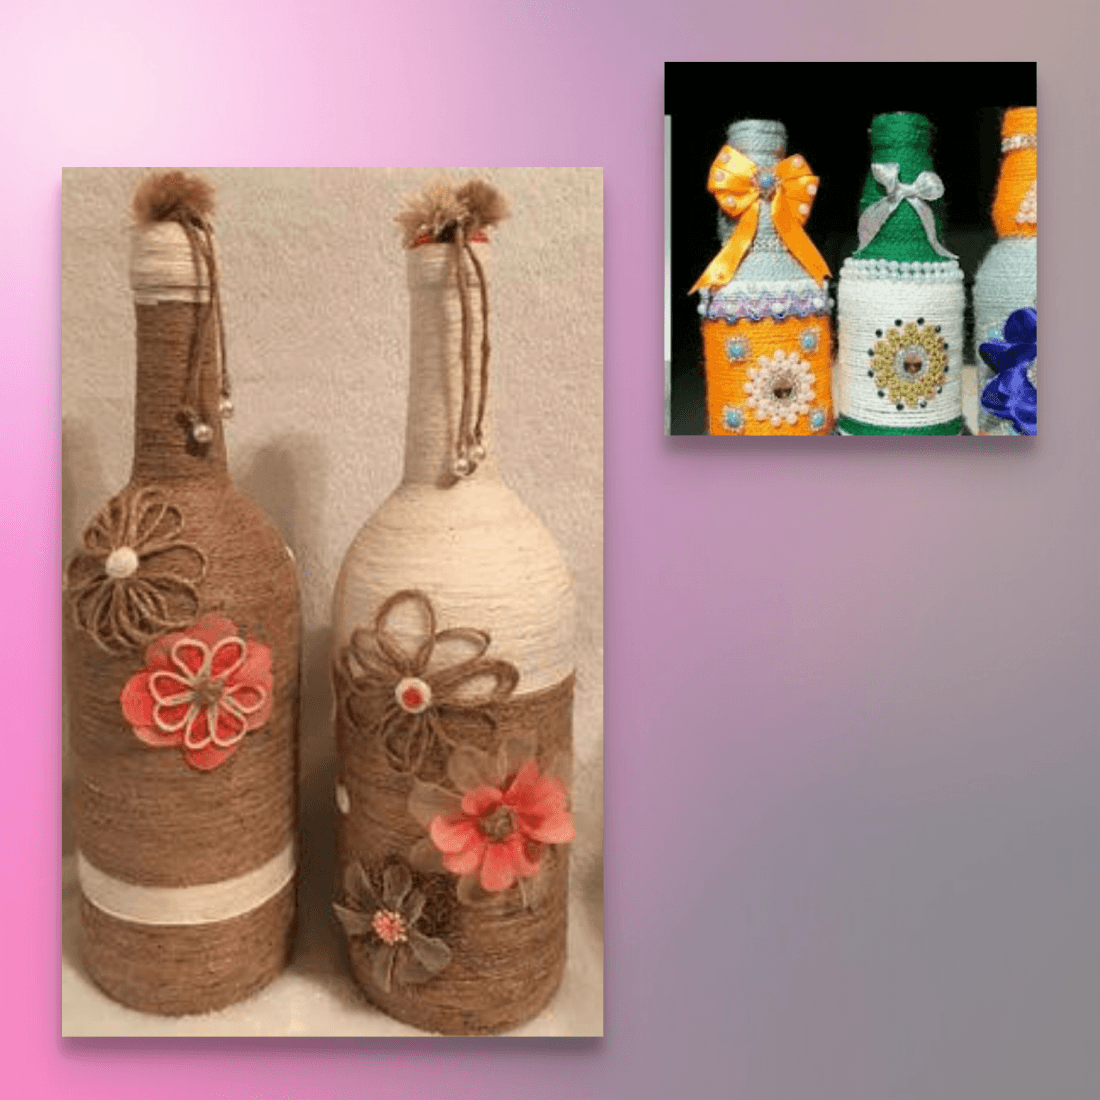 Upcycling waste into wonders